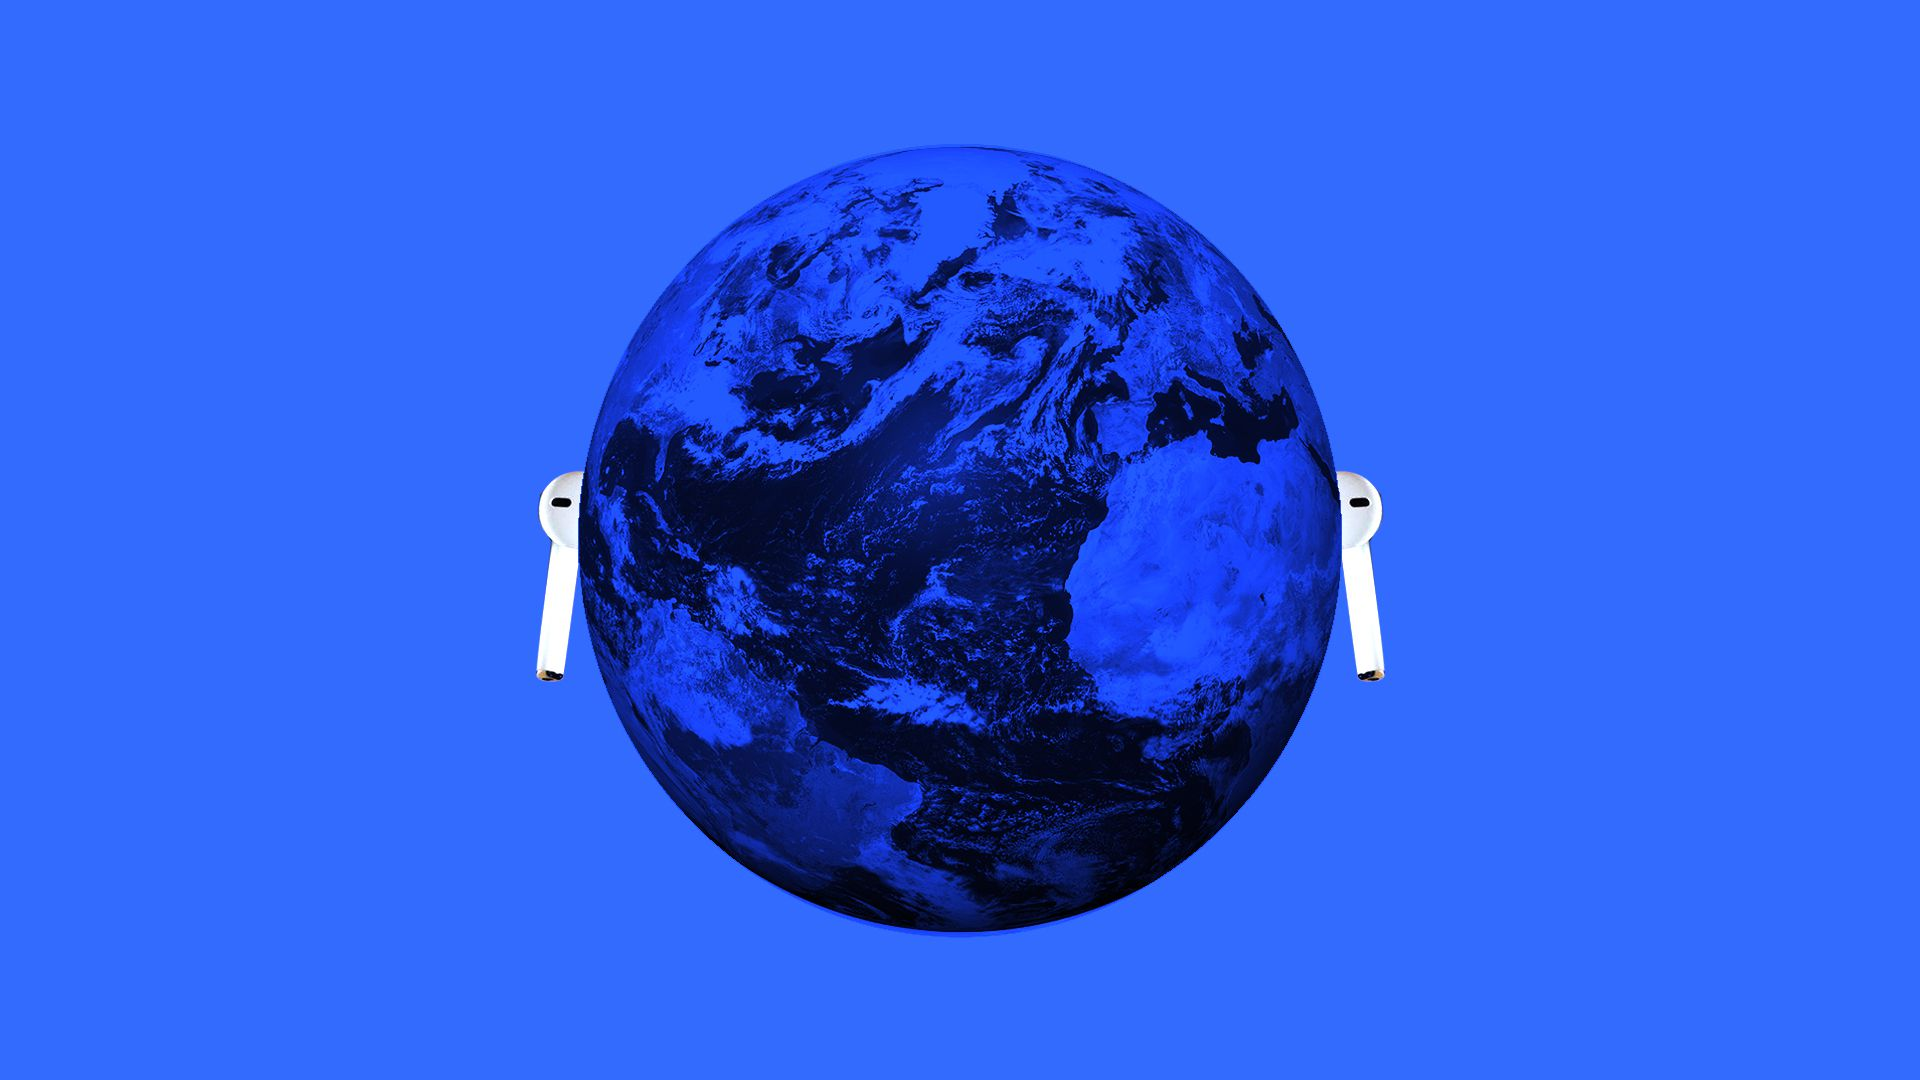 Illustration of the earth wearing airpods